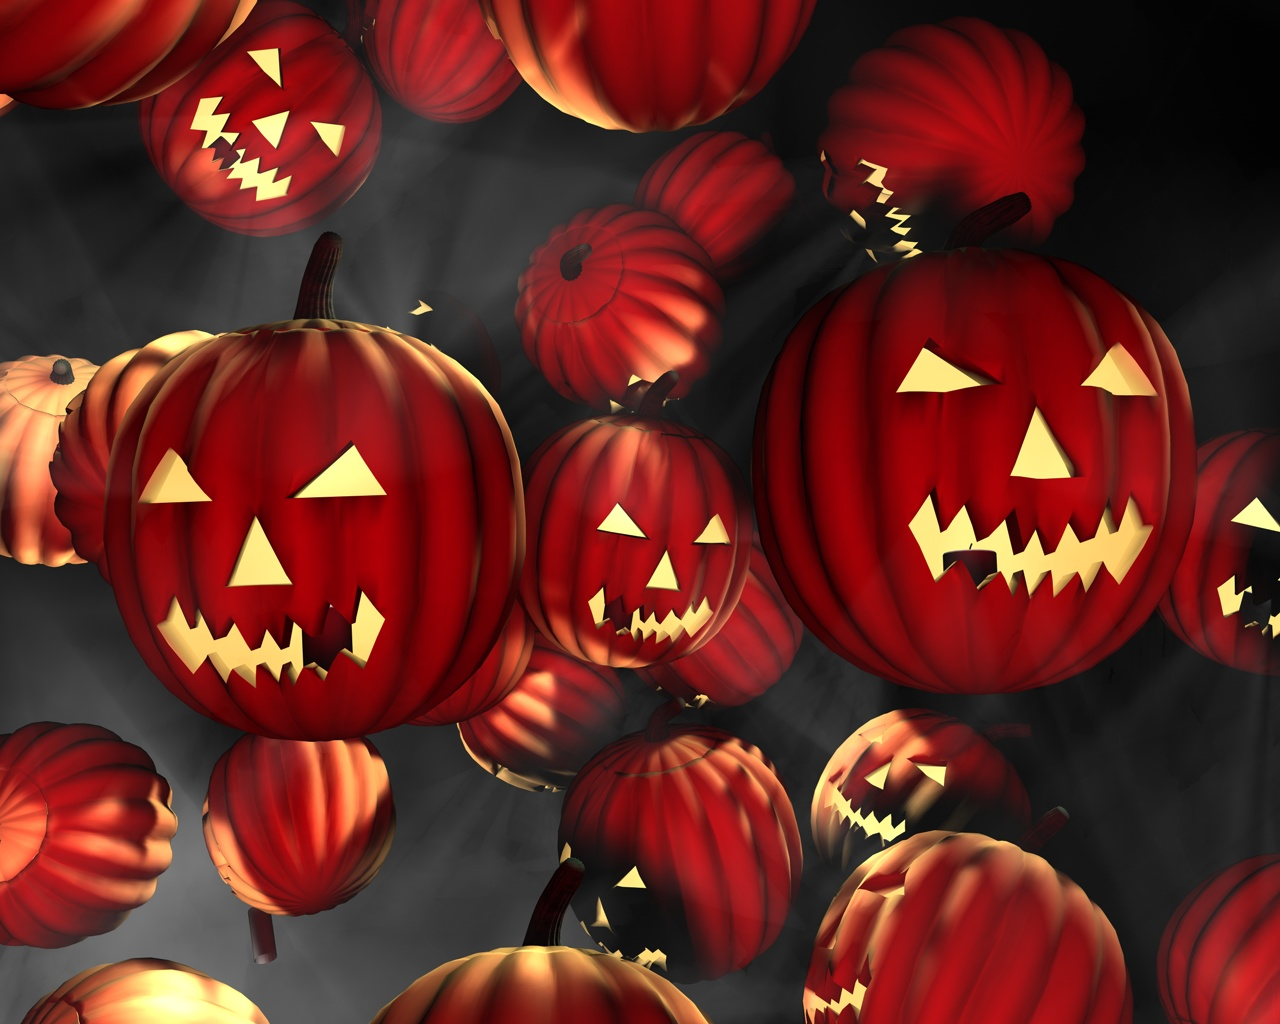 Collection of Halloween Free Wallpaper Downloads on HDWallpapers